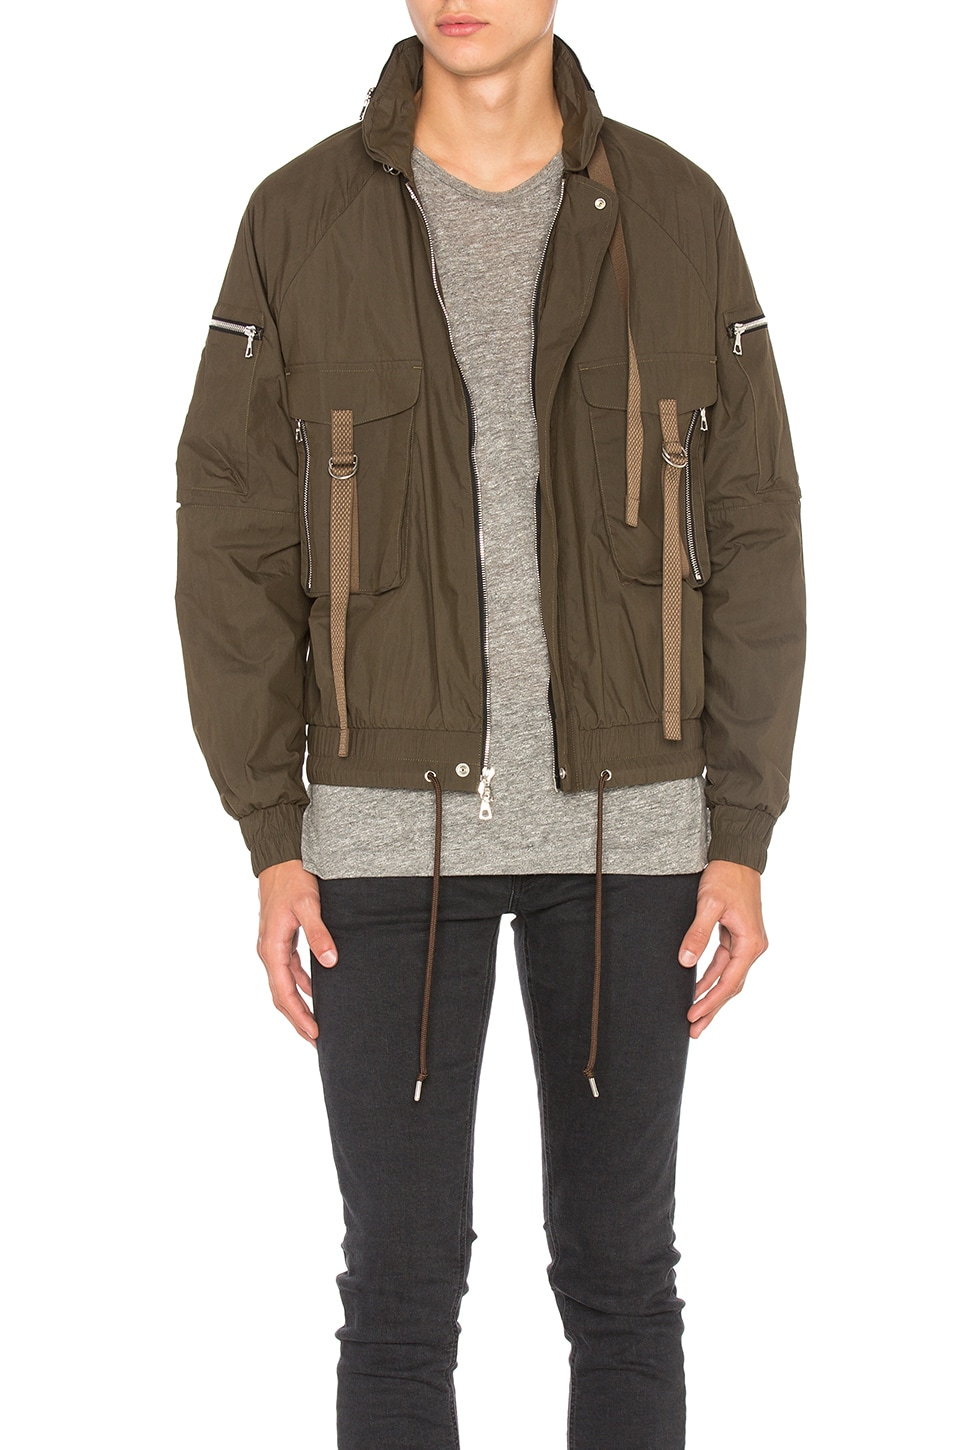 SRD Parachute Jacket by JOHN ELLIOTT